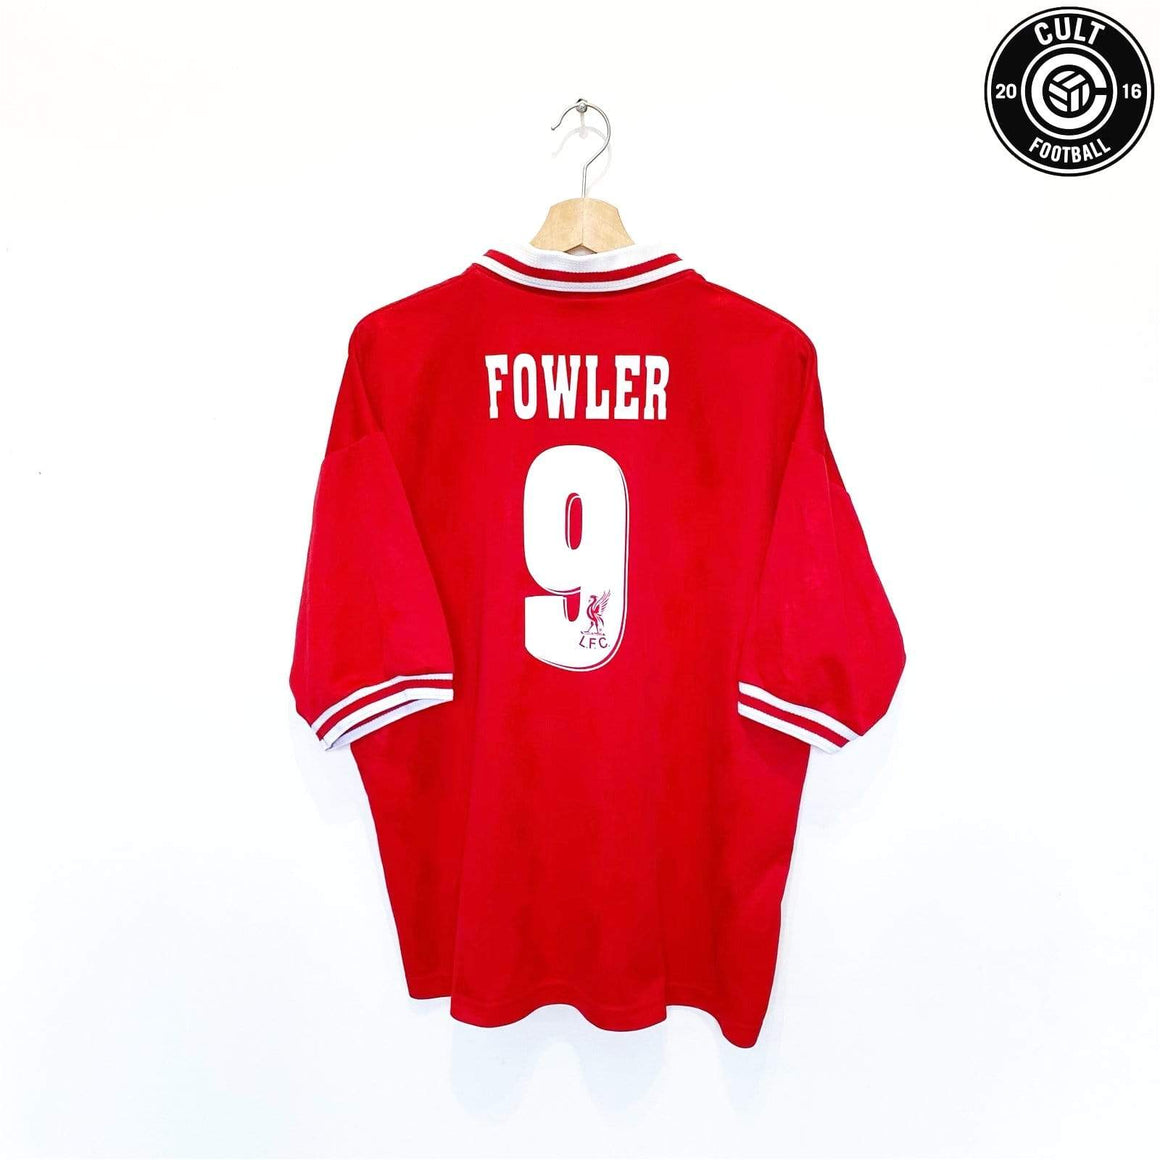 Cult Football 1996/97 FOWLER #9 Liverpool Vintage Reebok Home Football Shirt Jersey (XL) 46/48